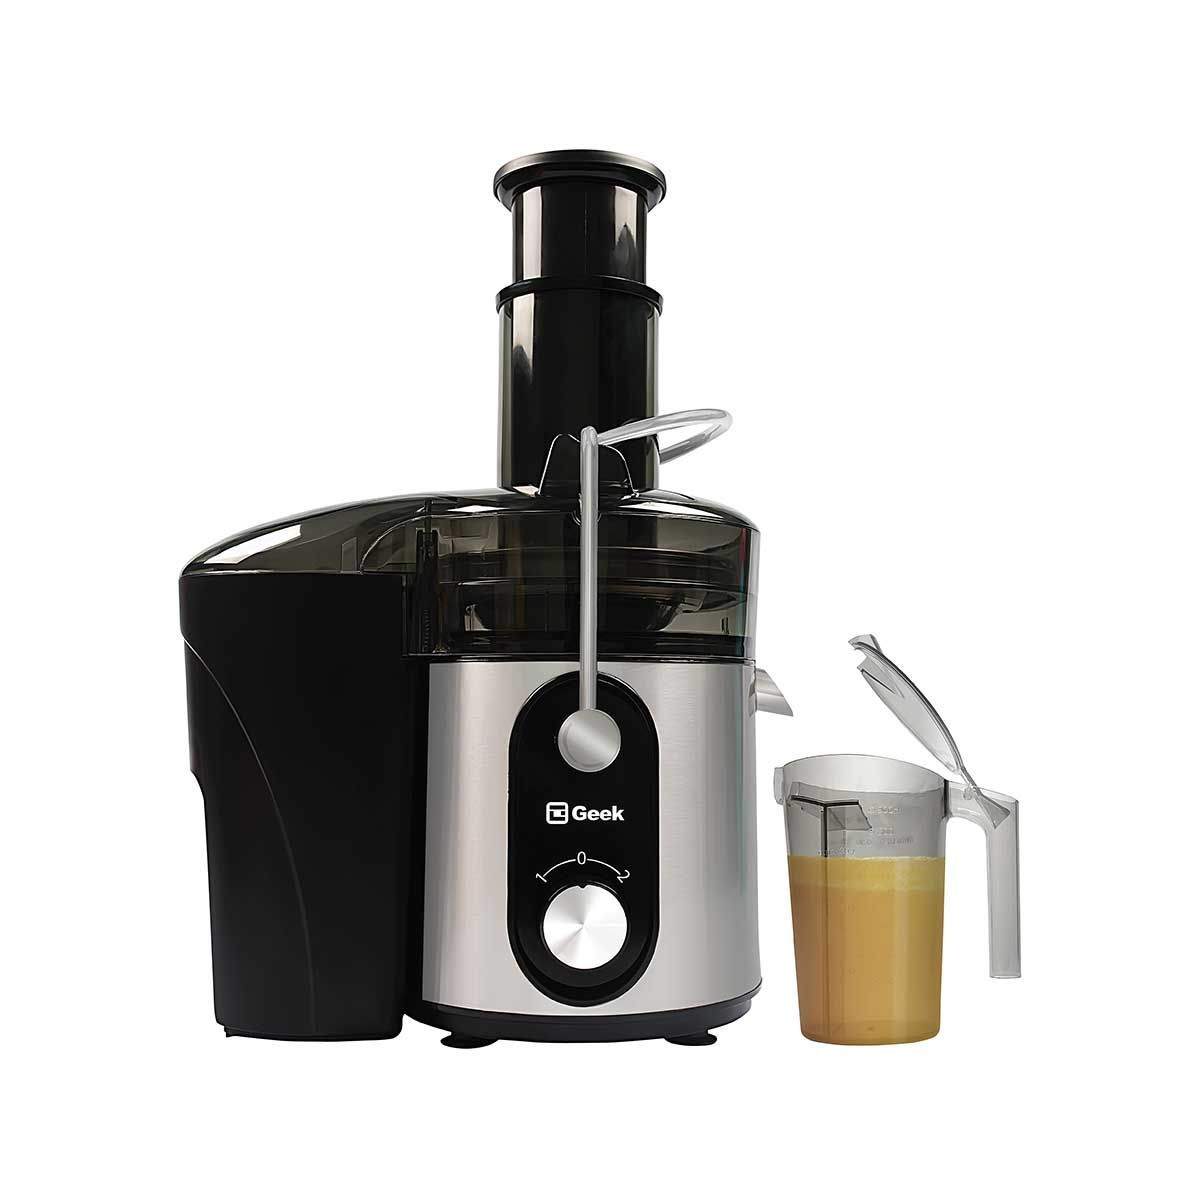 Geek Jooztra - Centrifugal Double Layered Juicer- 800 Watts